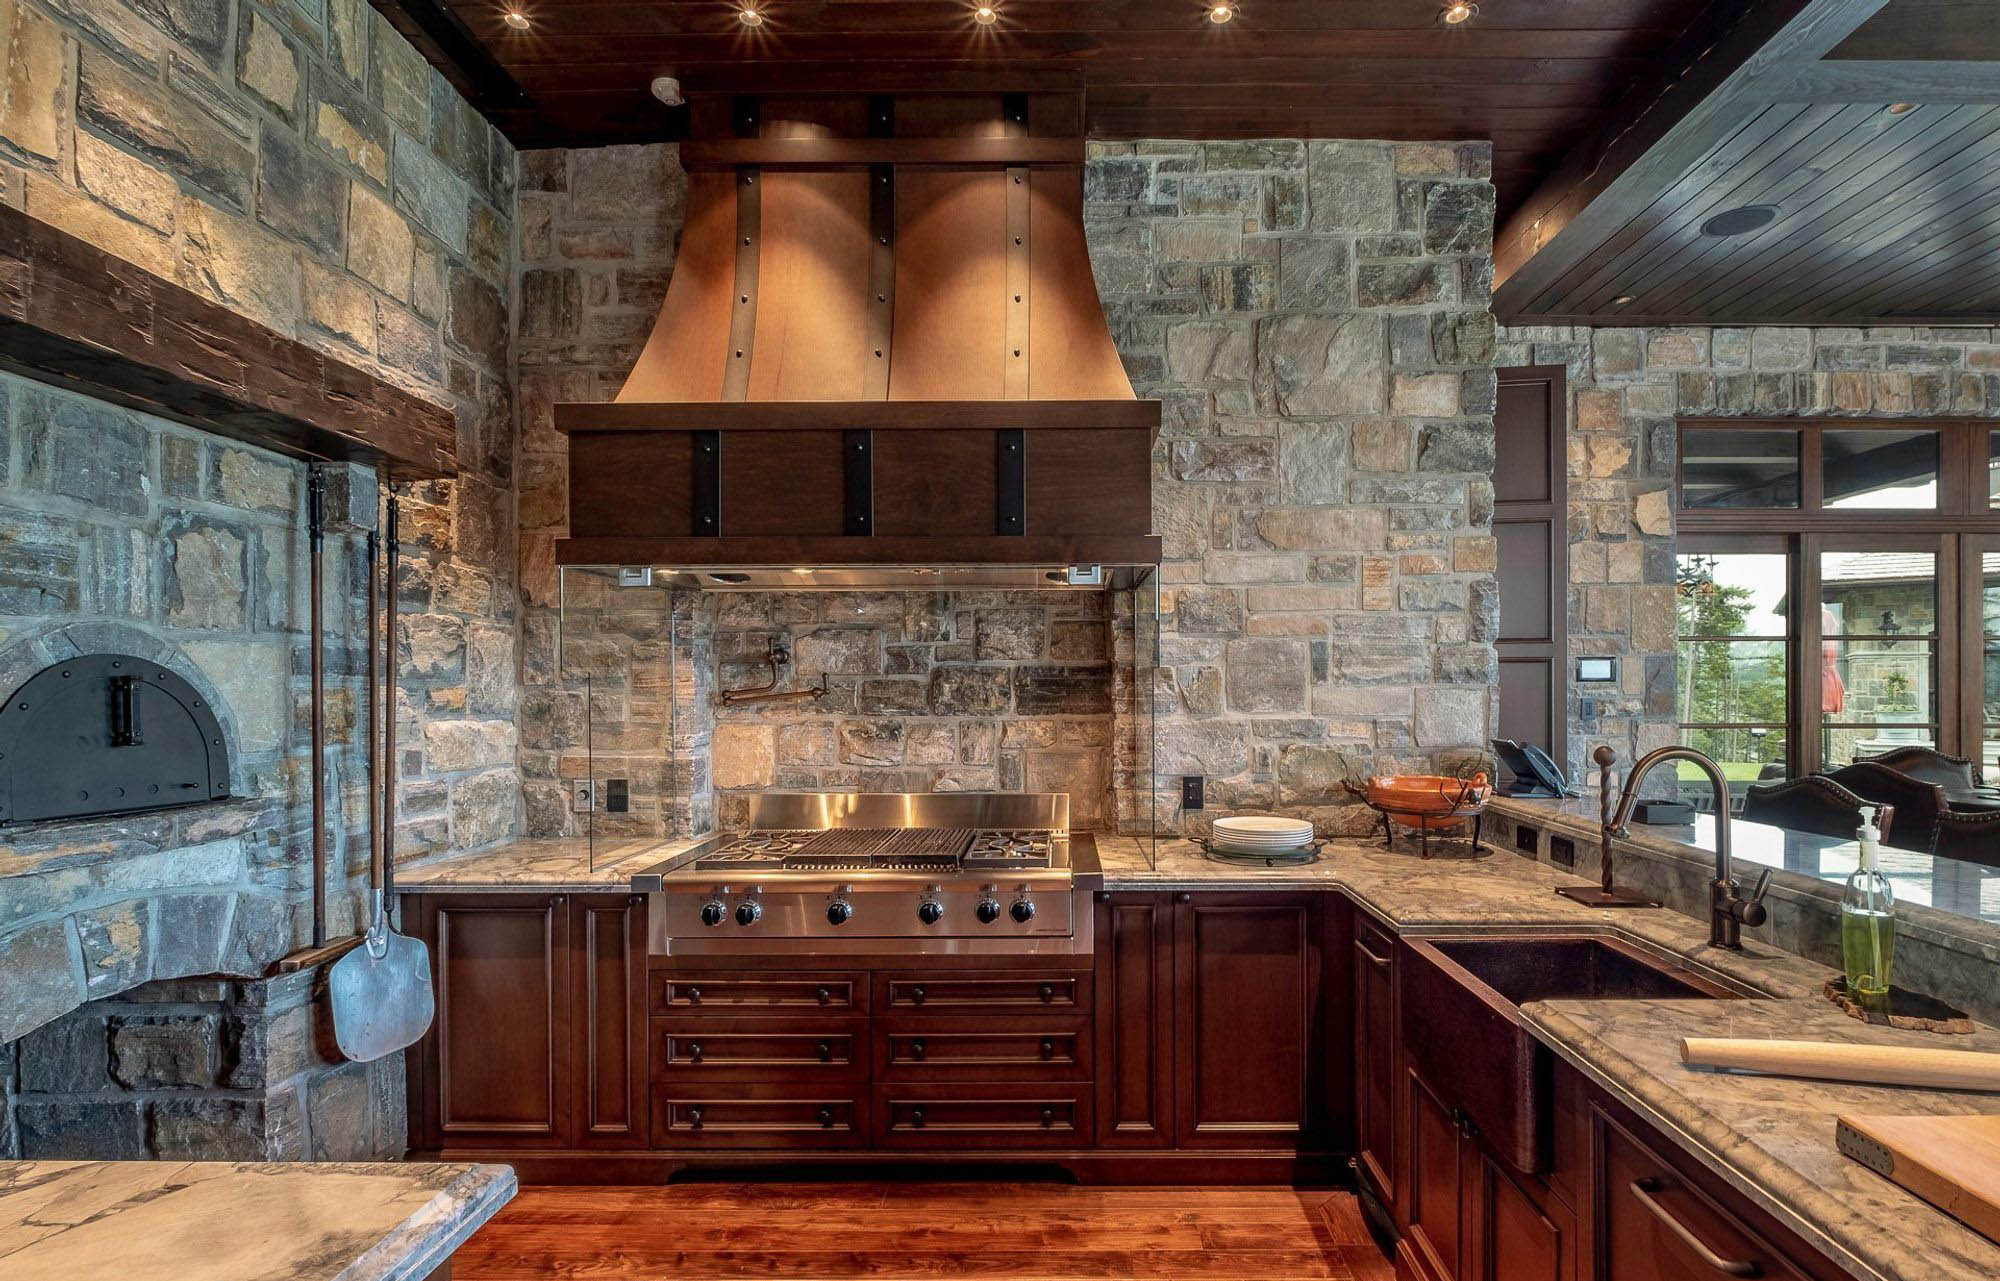 Rustic kitchen design with cream colored granite countertops. Built in stone pizza oven.